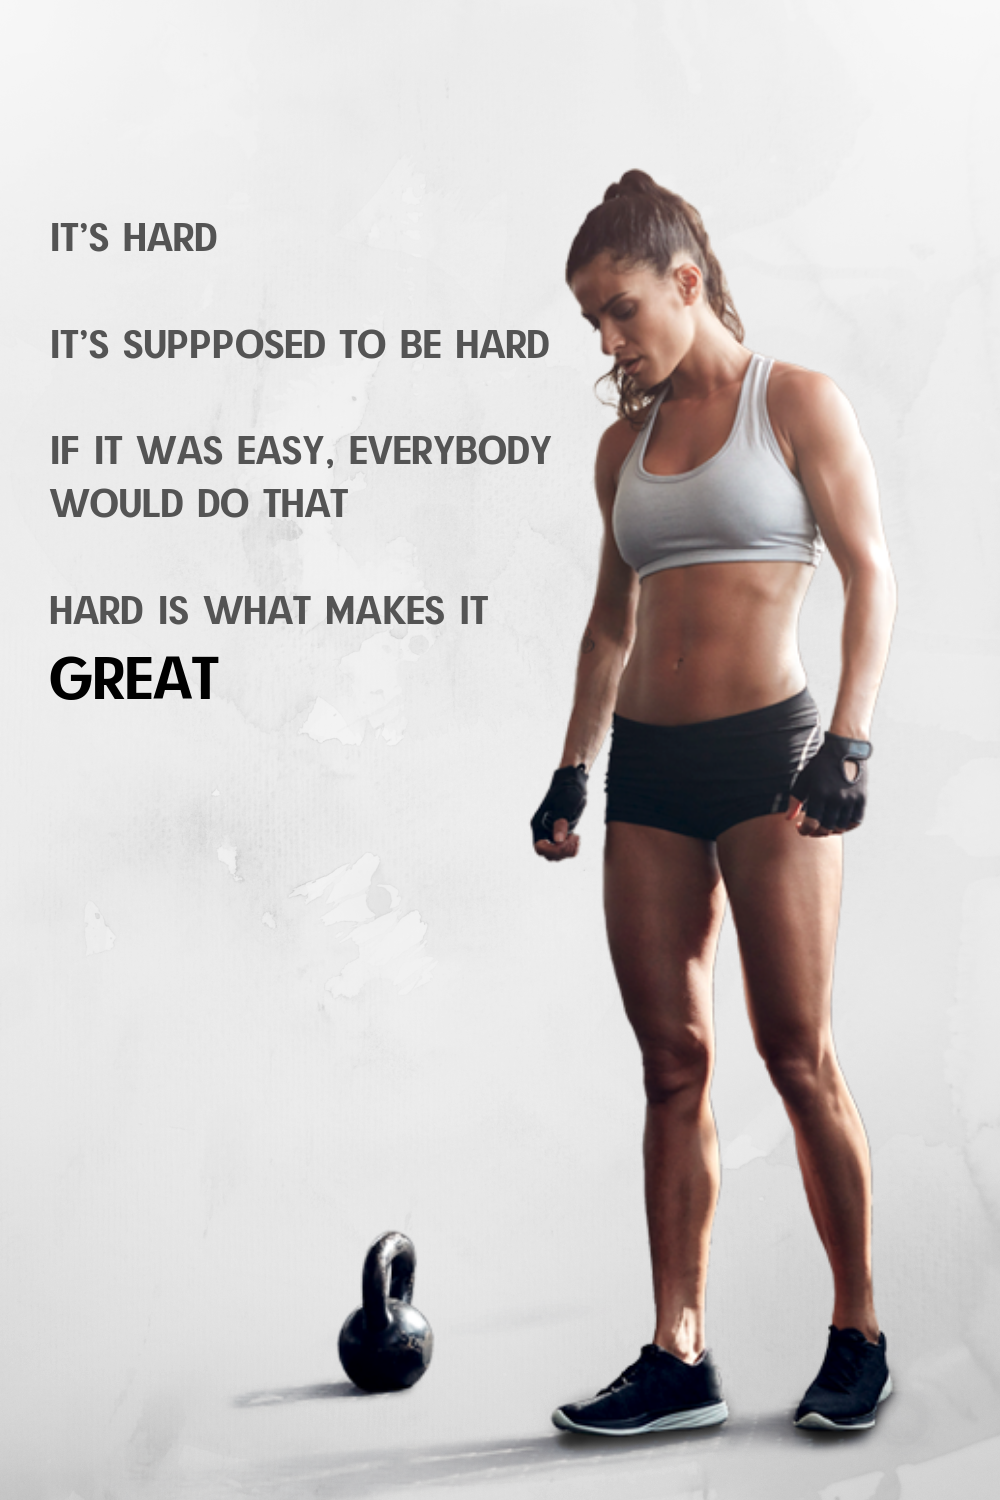 Fitness Motivation Quote For Women Workout Motivation Women Women Fitness Motivation Quotes Fitness Motivation Quotes